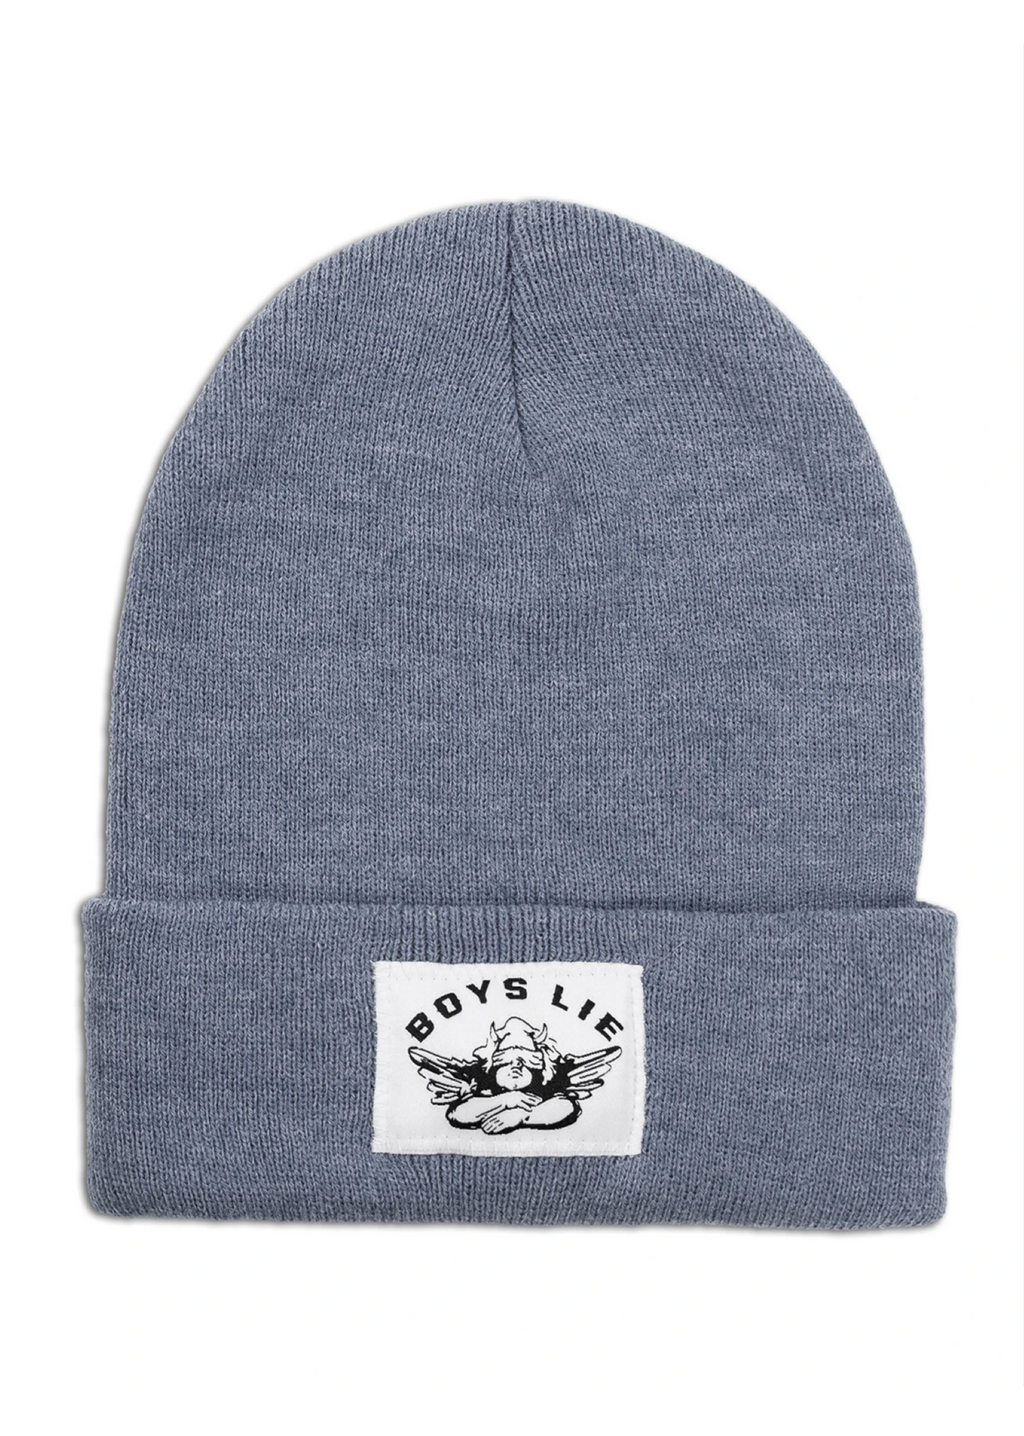 Boys Lie Beanie ★ Heather Navy - Rock N Rags